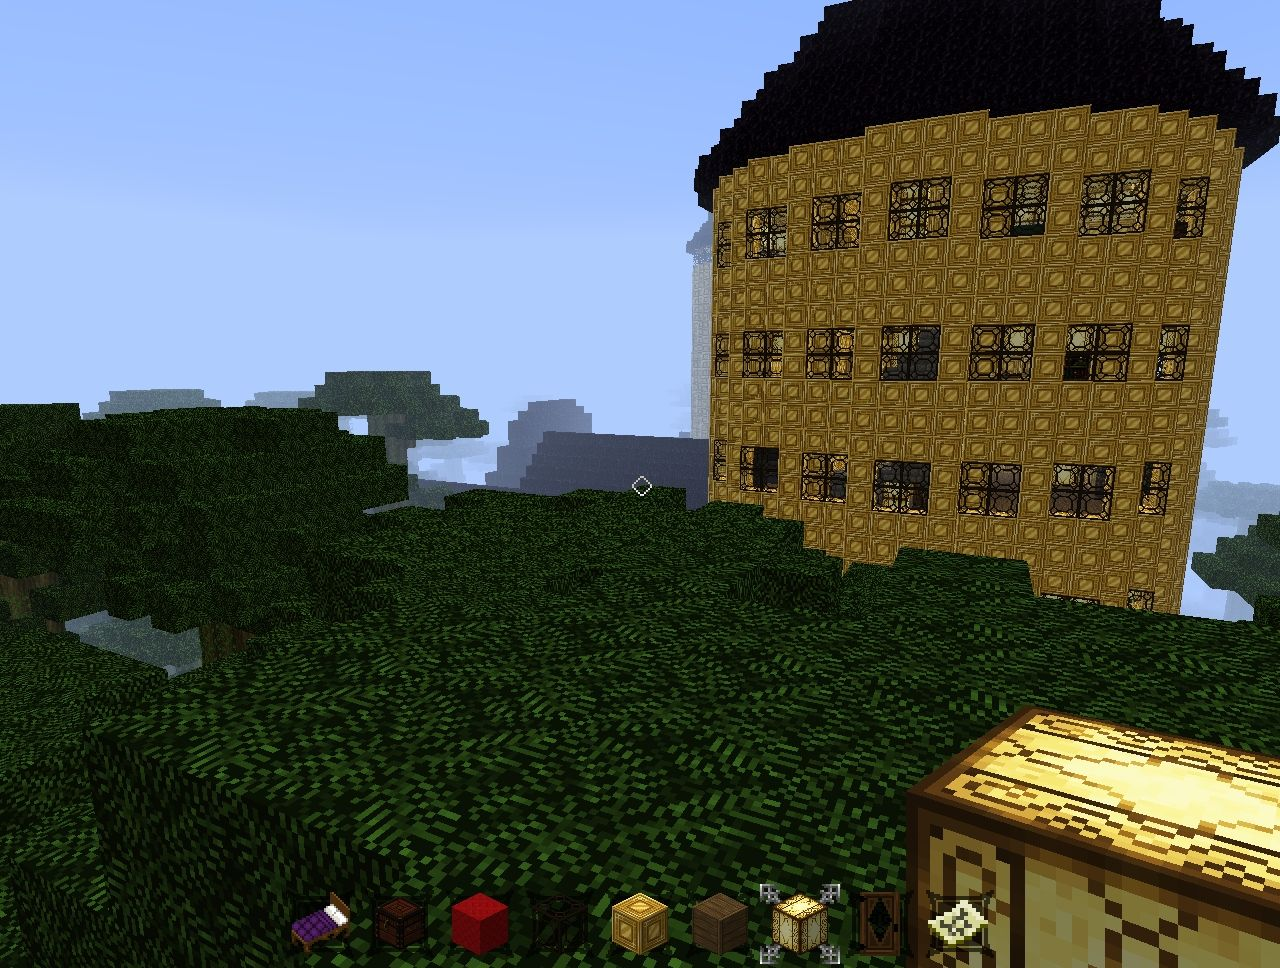 Just walking through the jungle...'0' it's a castle!